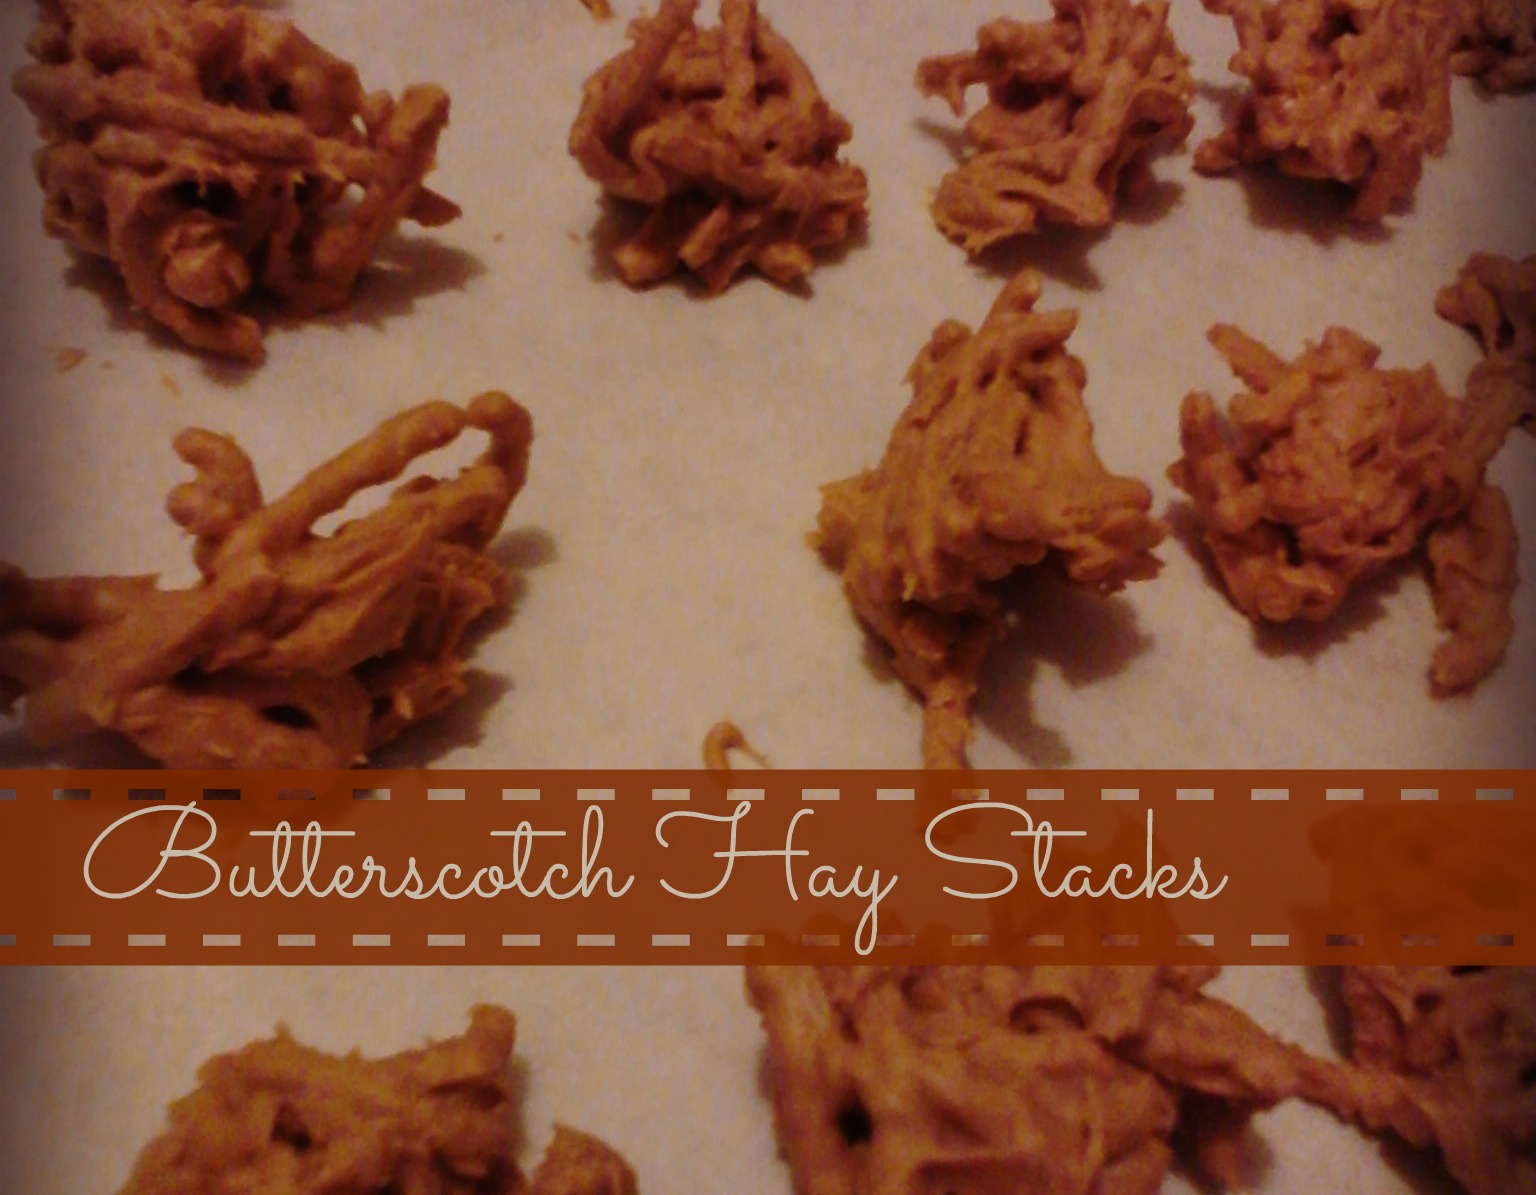 Butterscotch Hay Stacks